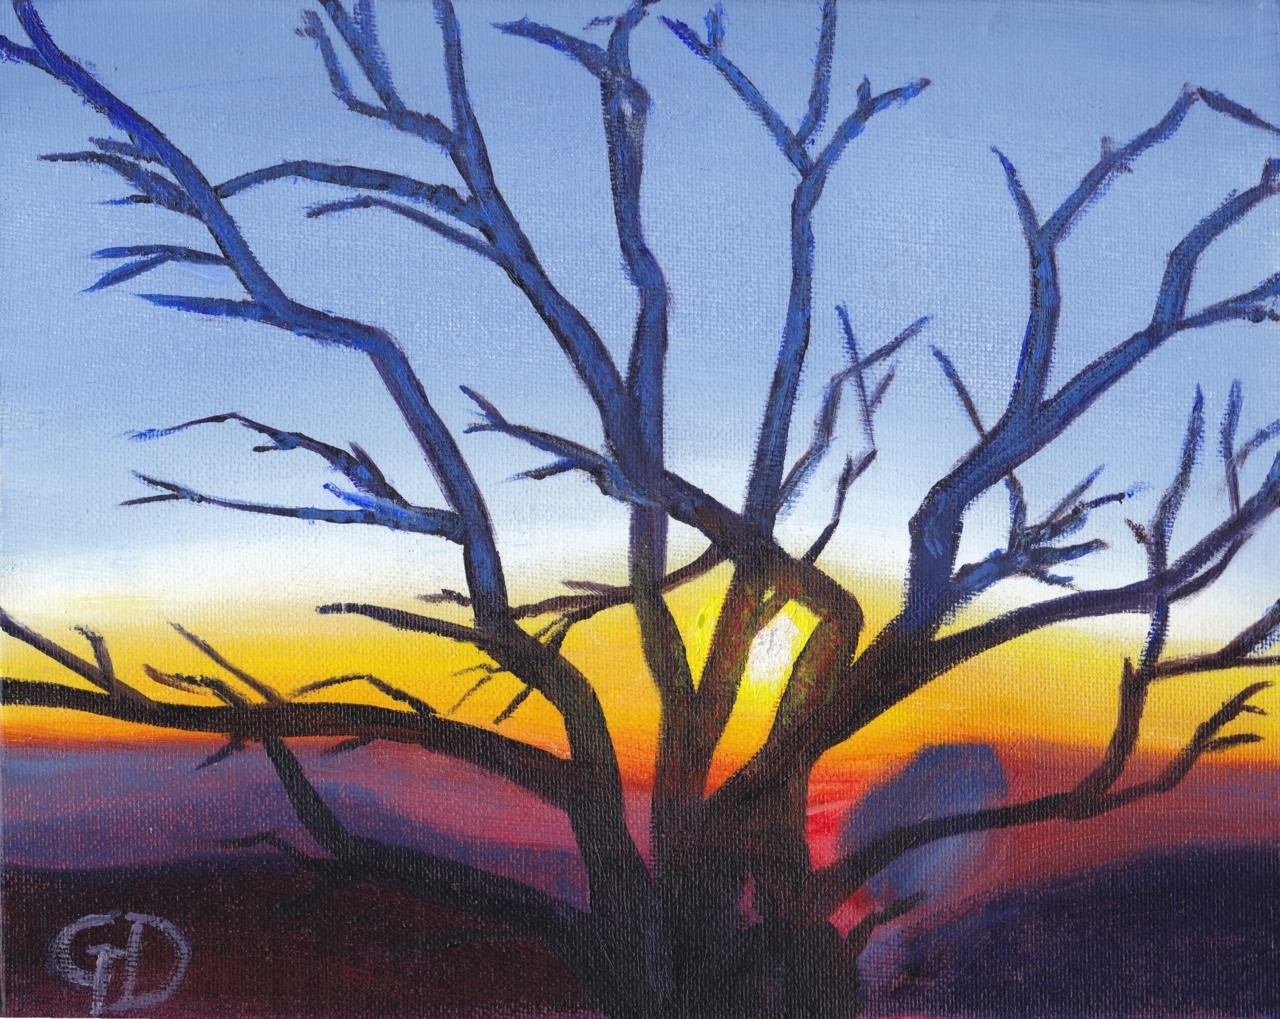 "Mount Buffalo Sunset.jpg - Mount Buffalo Sunset Water-soluble oil on canvas, 8 x 10"" (20.3 x 25.4 cm) Completed April 2019"